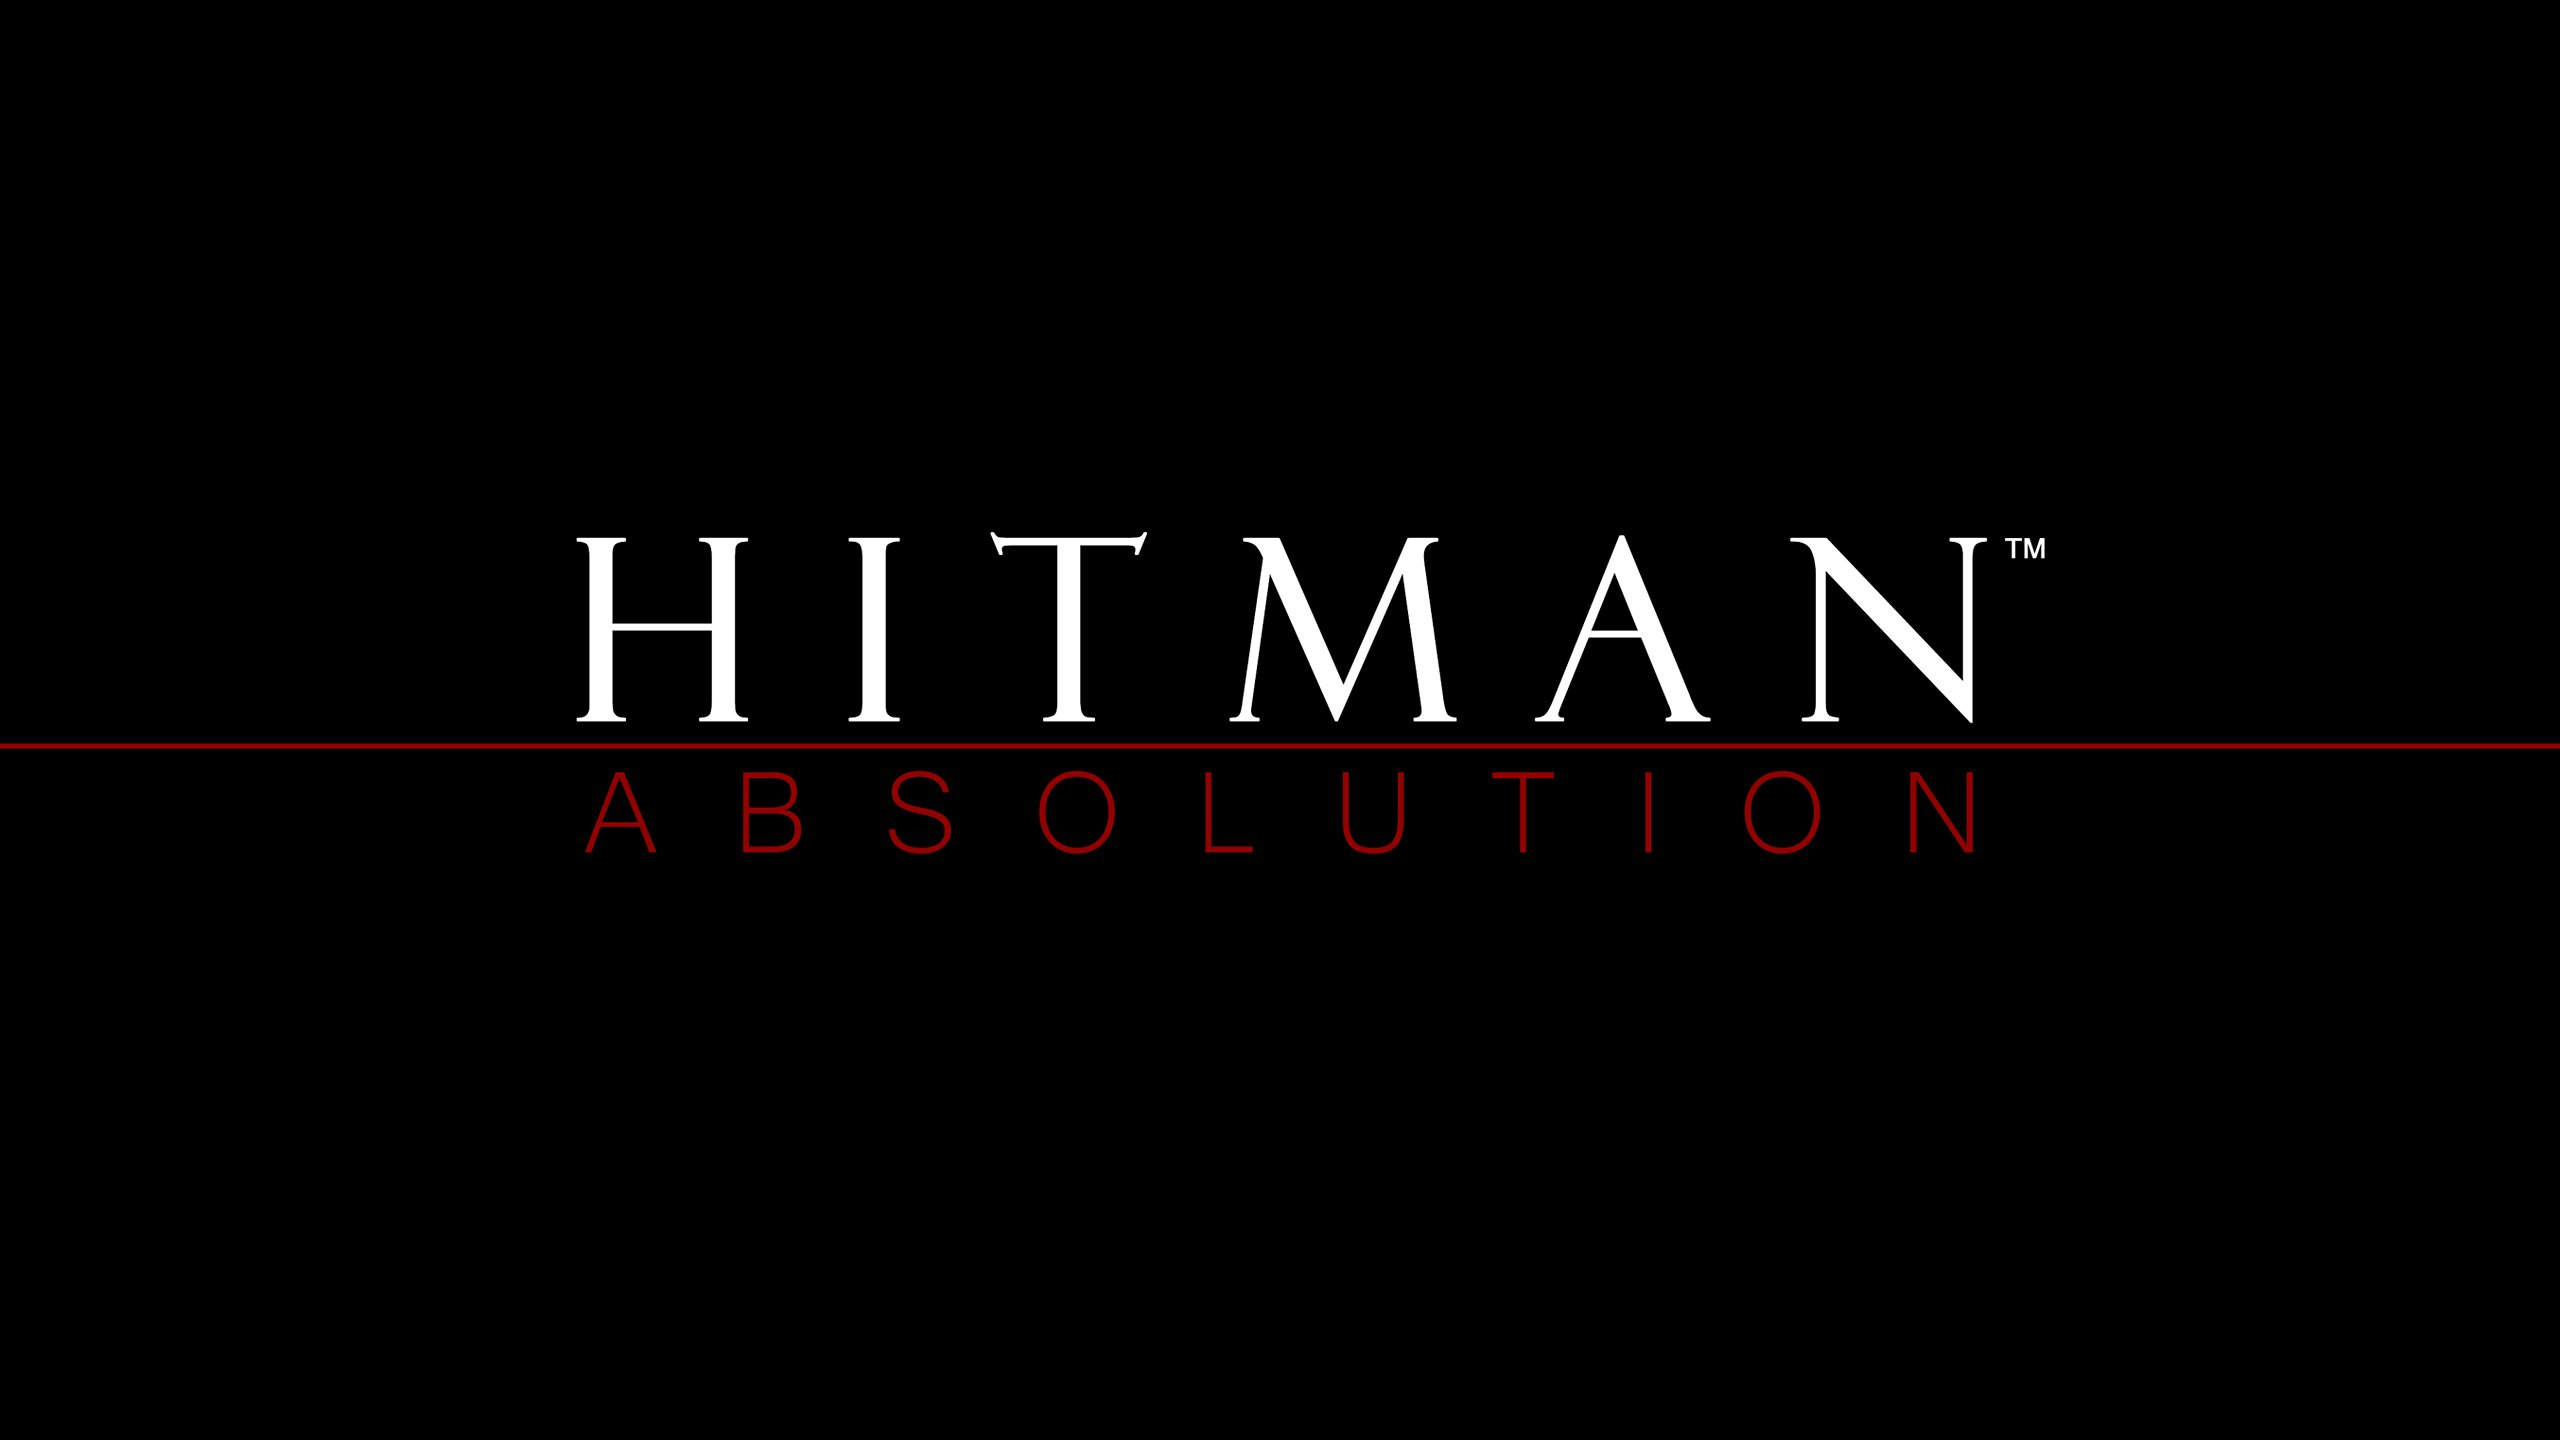 2560x1440 Hitman Absolution Youtube Channel Cover